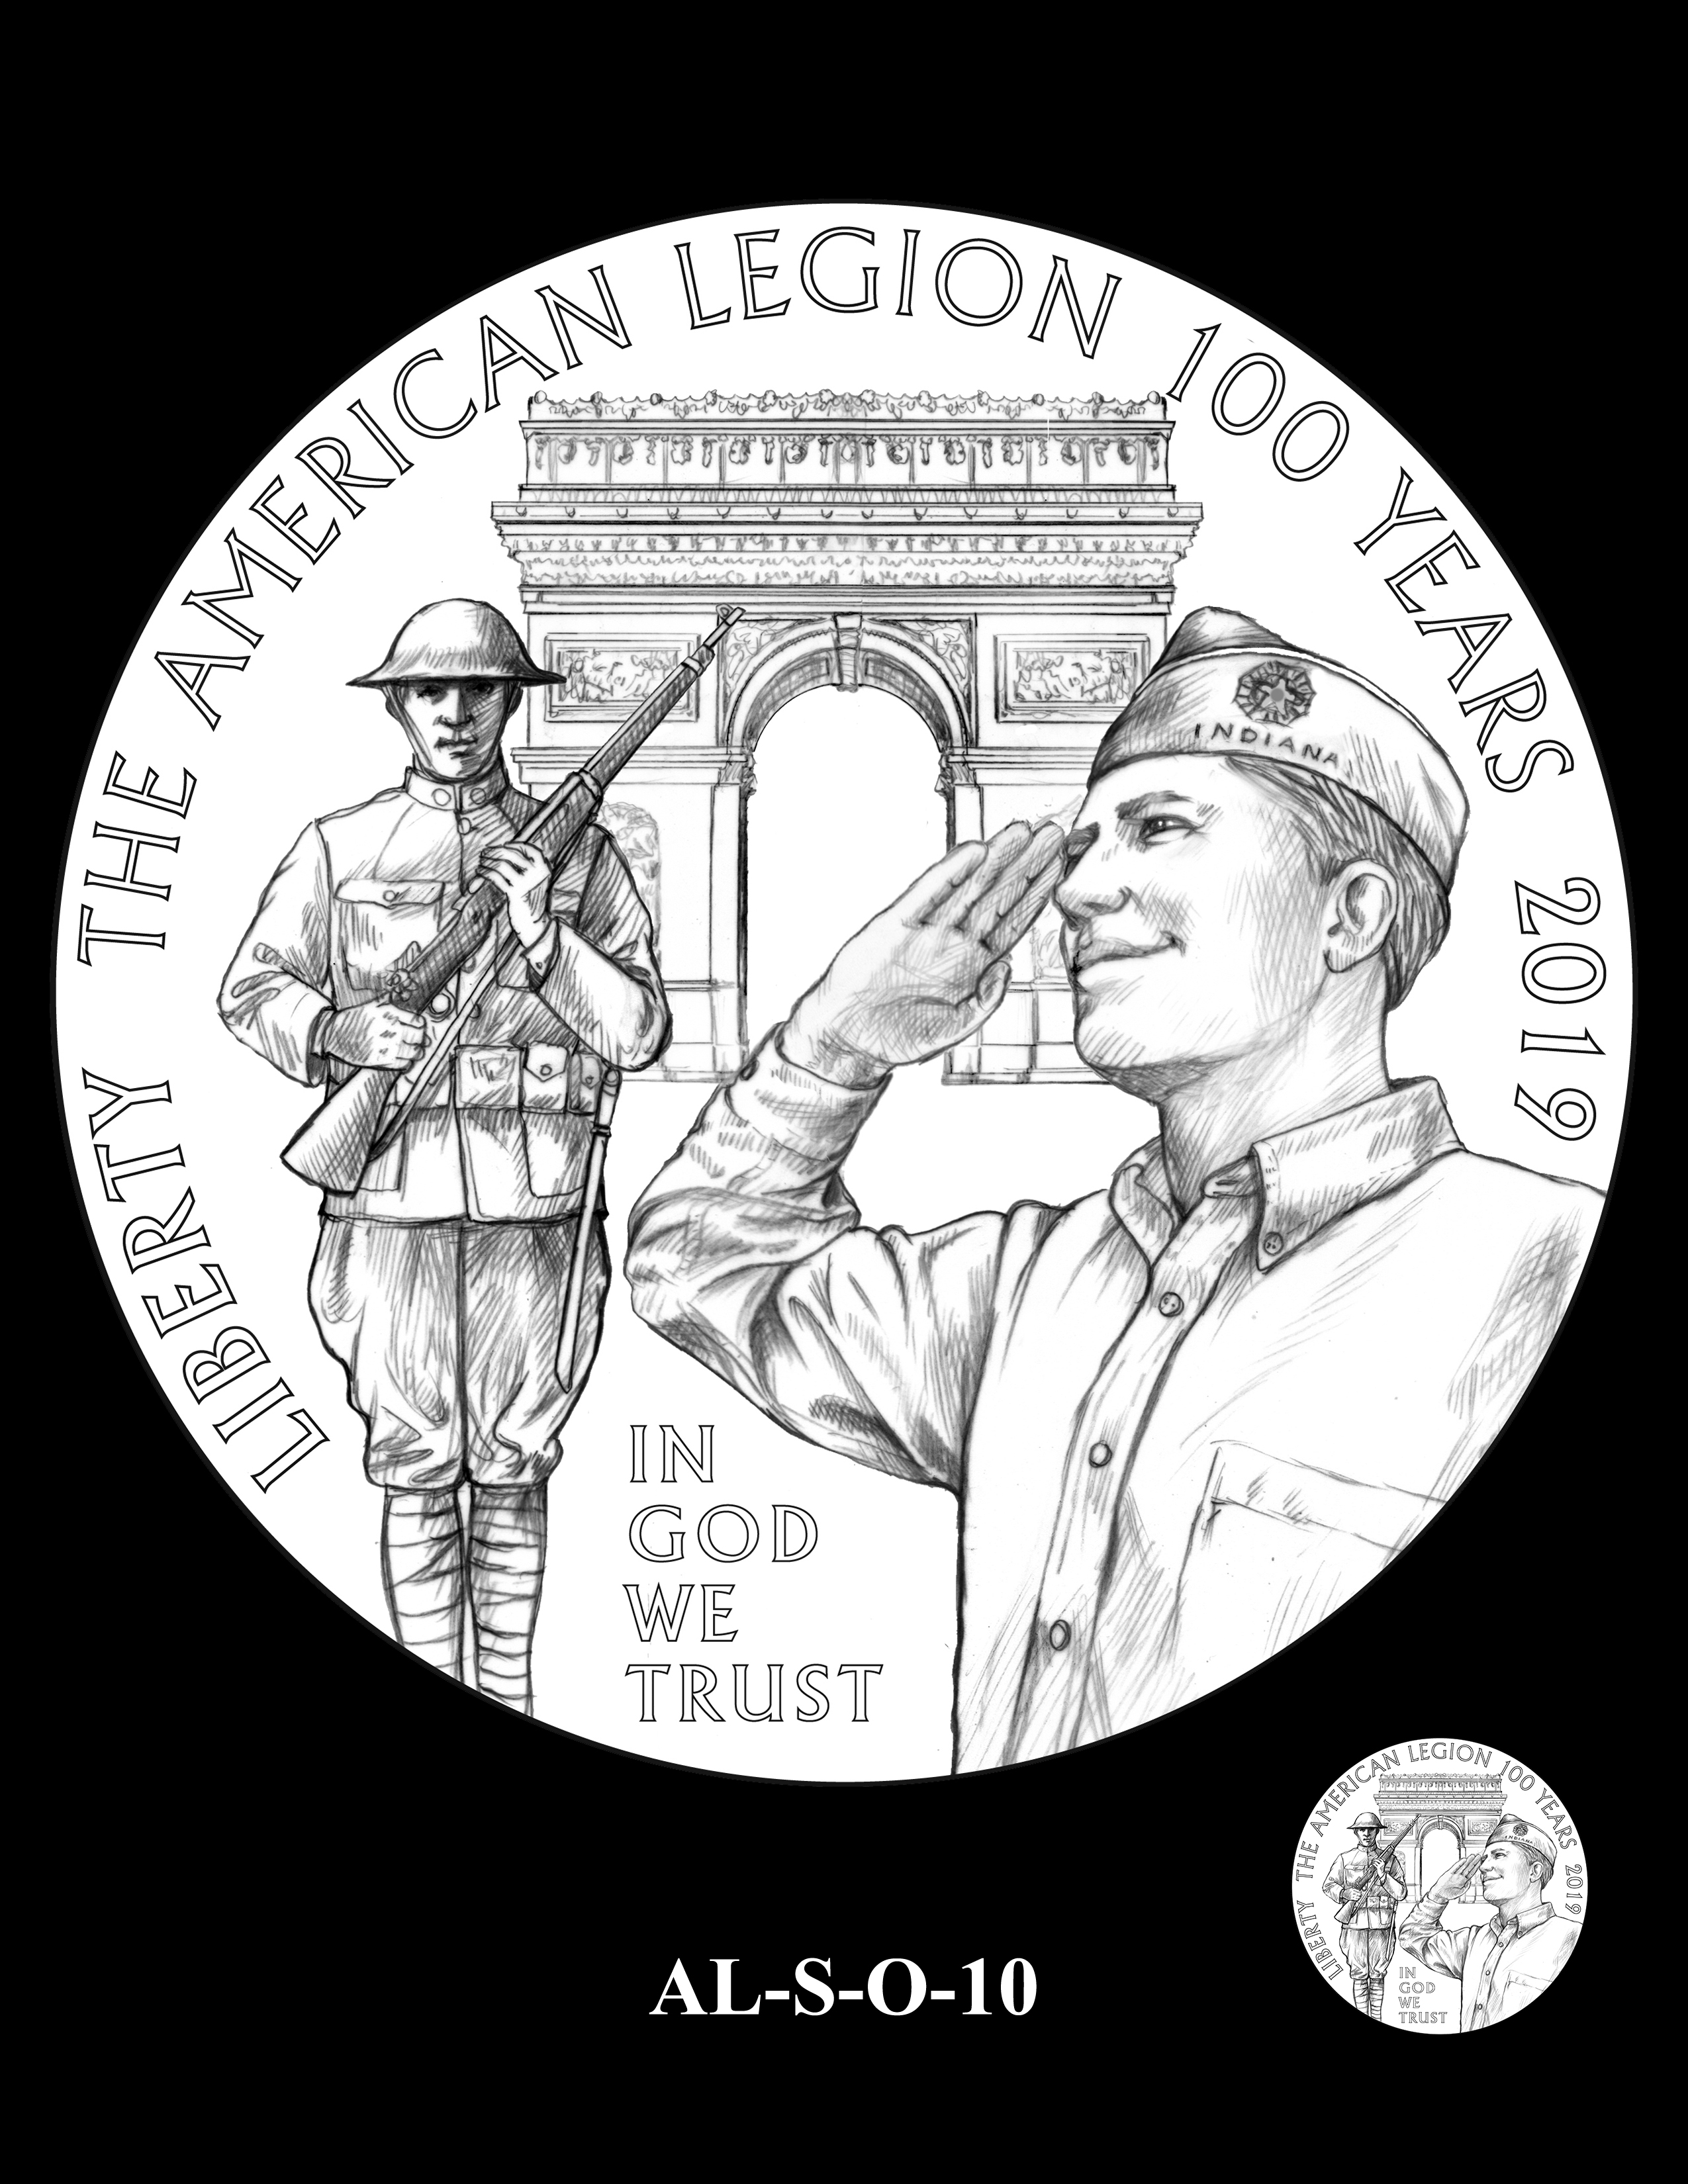 AL-S-O-10 -- 2019 American Legion 100th Anniversary Commemorative Coin Program - Silver Obverse